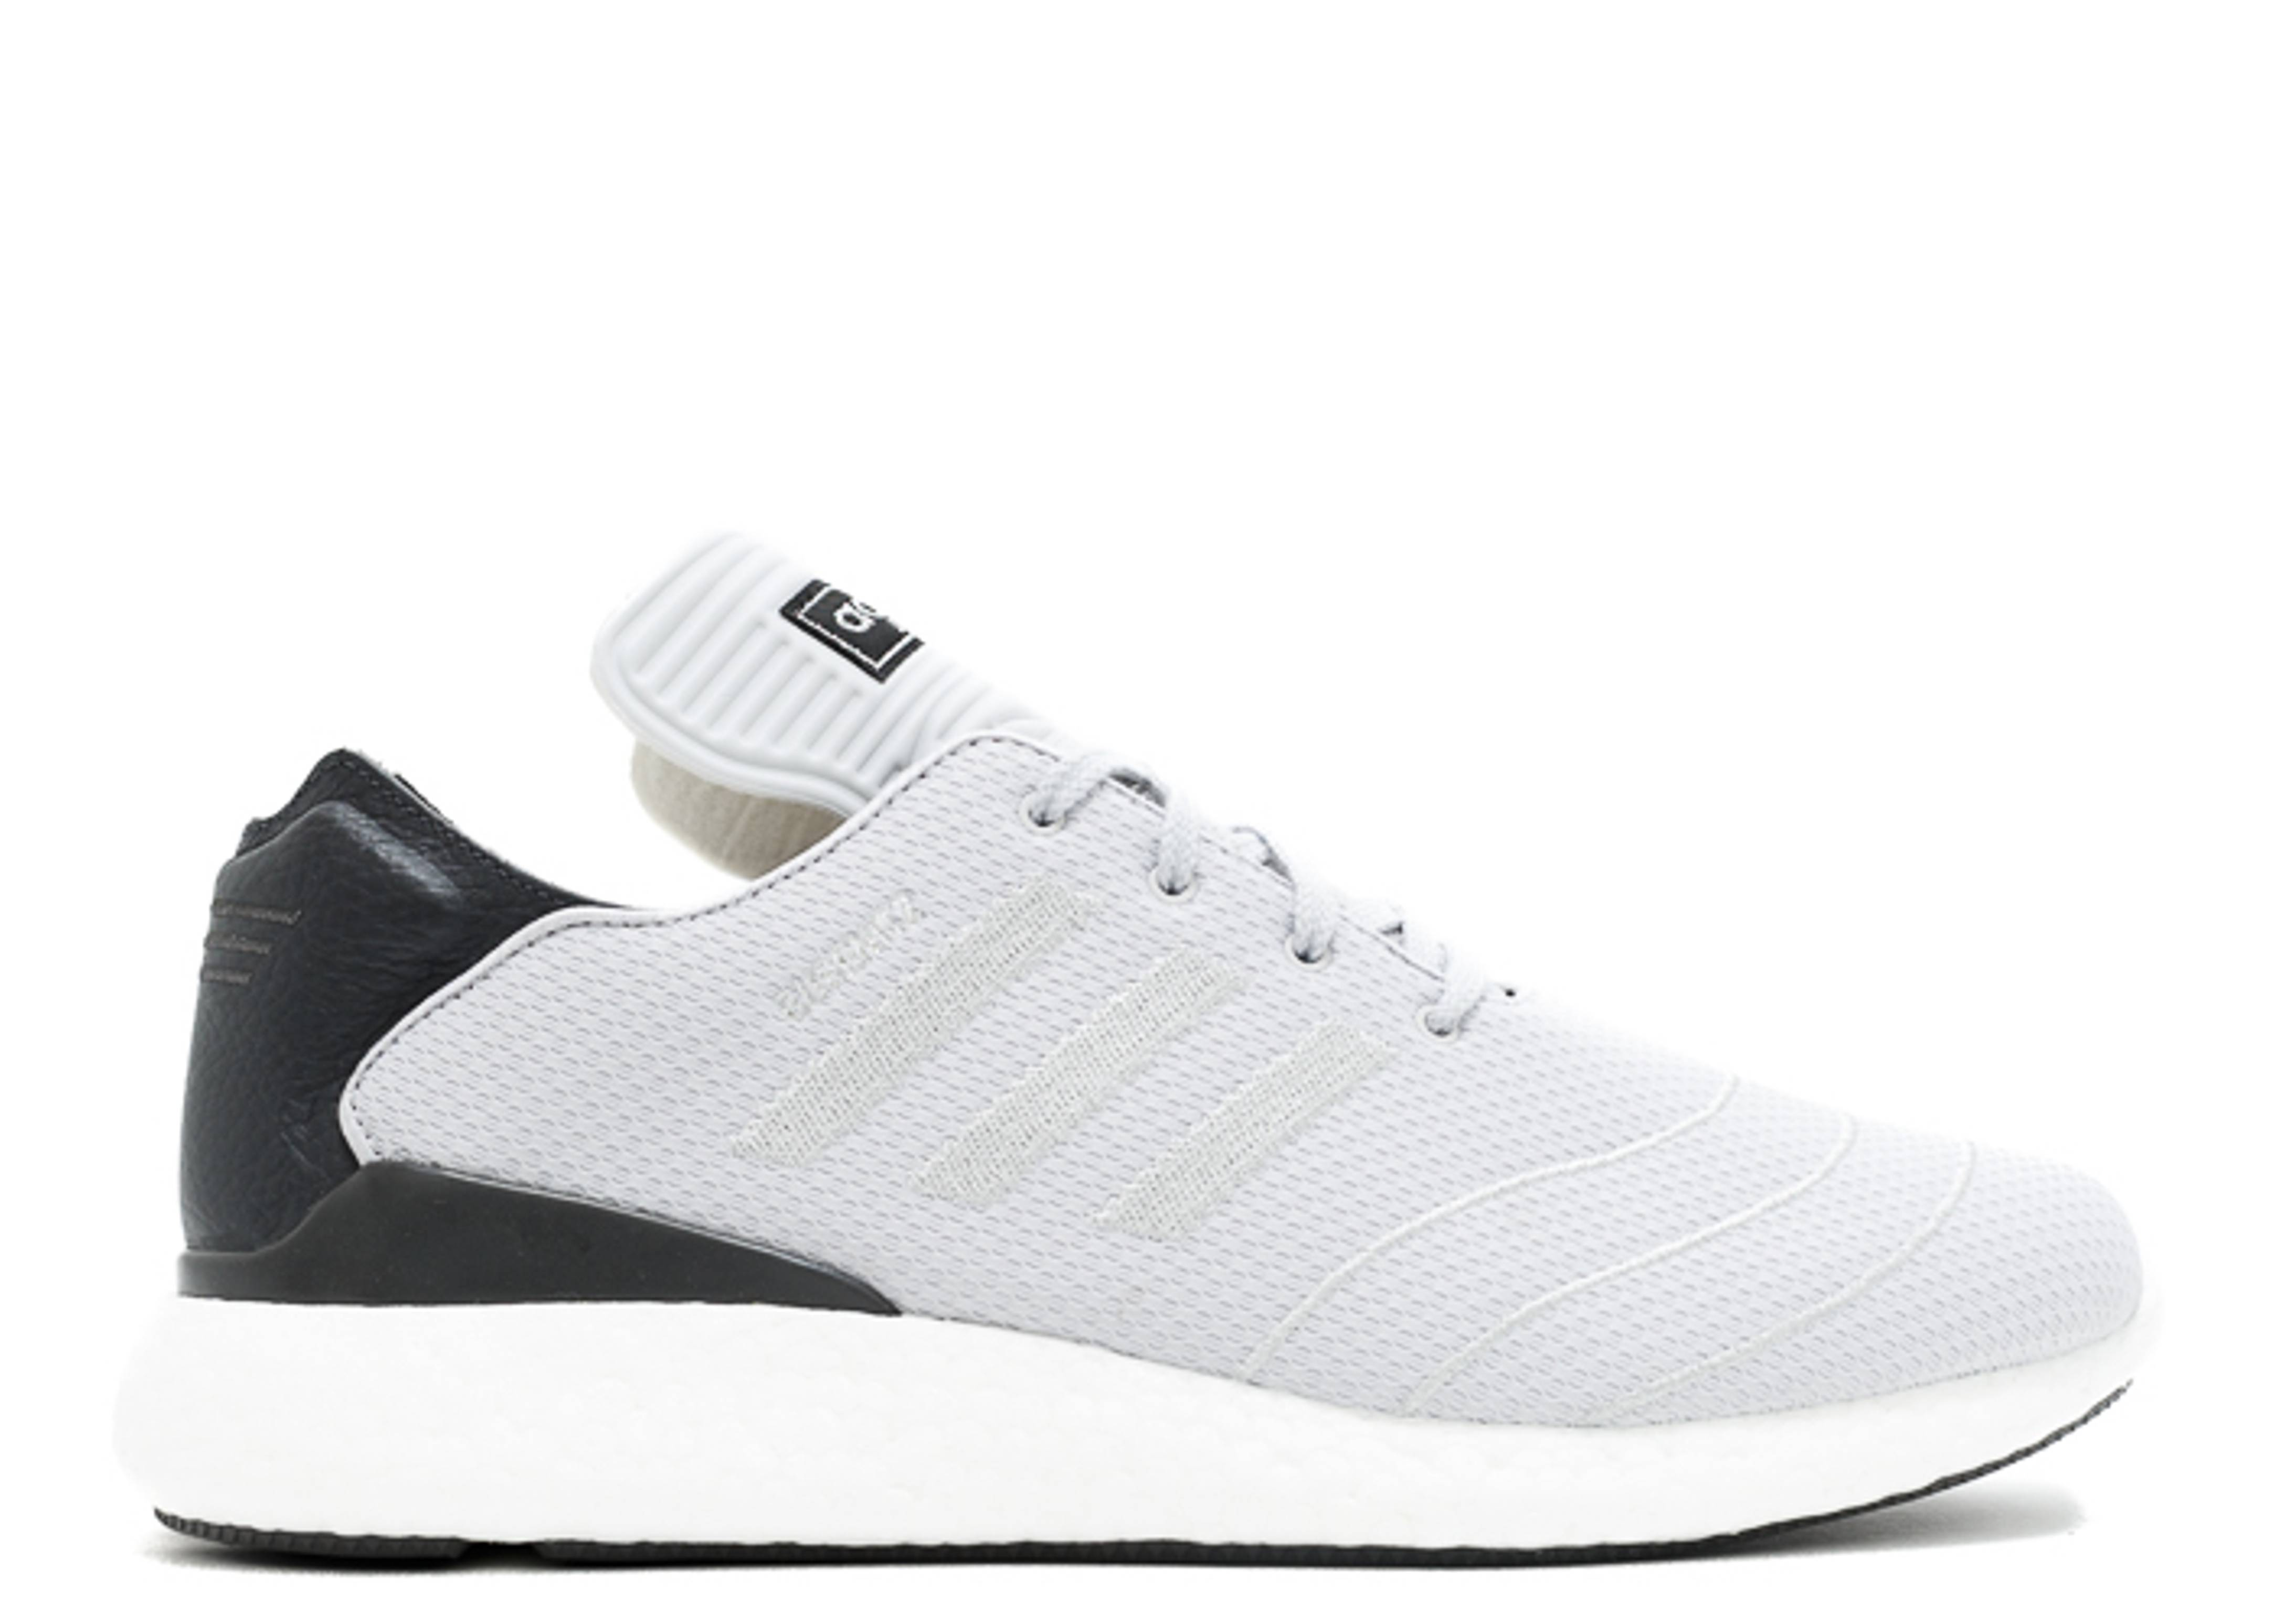 5796999e7d4 Busenitz Pure Boost - Adidas - f37762 - light grey anthracite ...